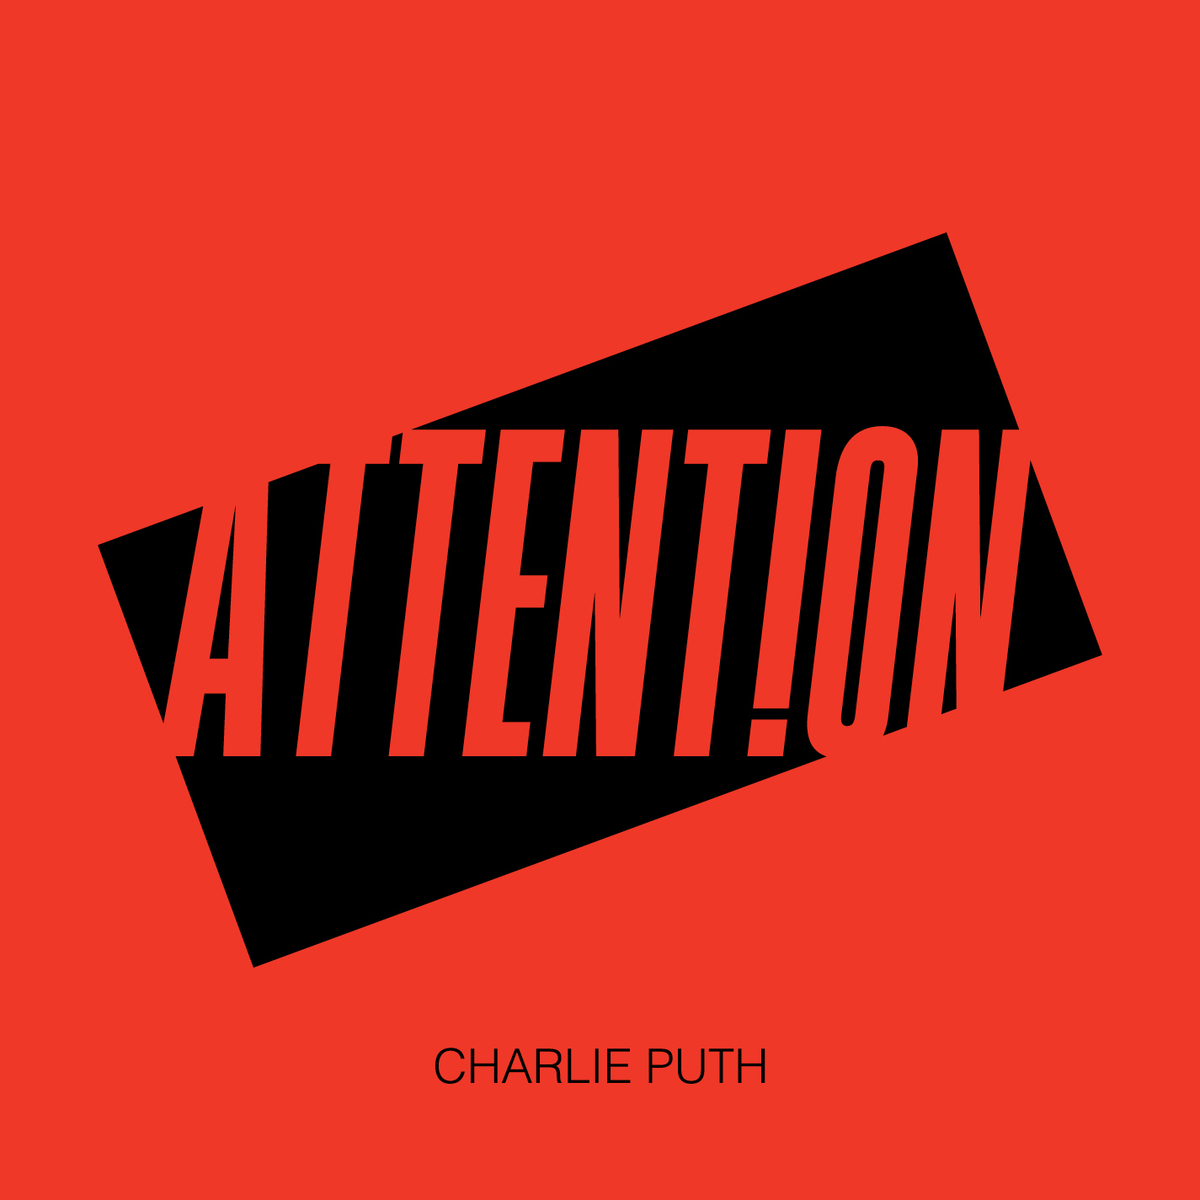 charlie puth free mp3 songs download